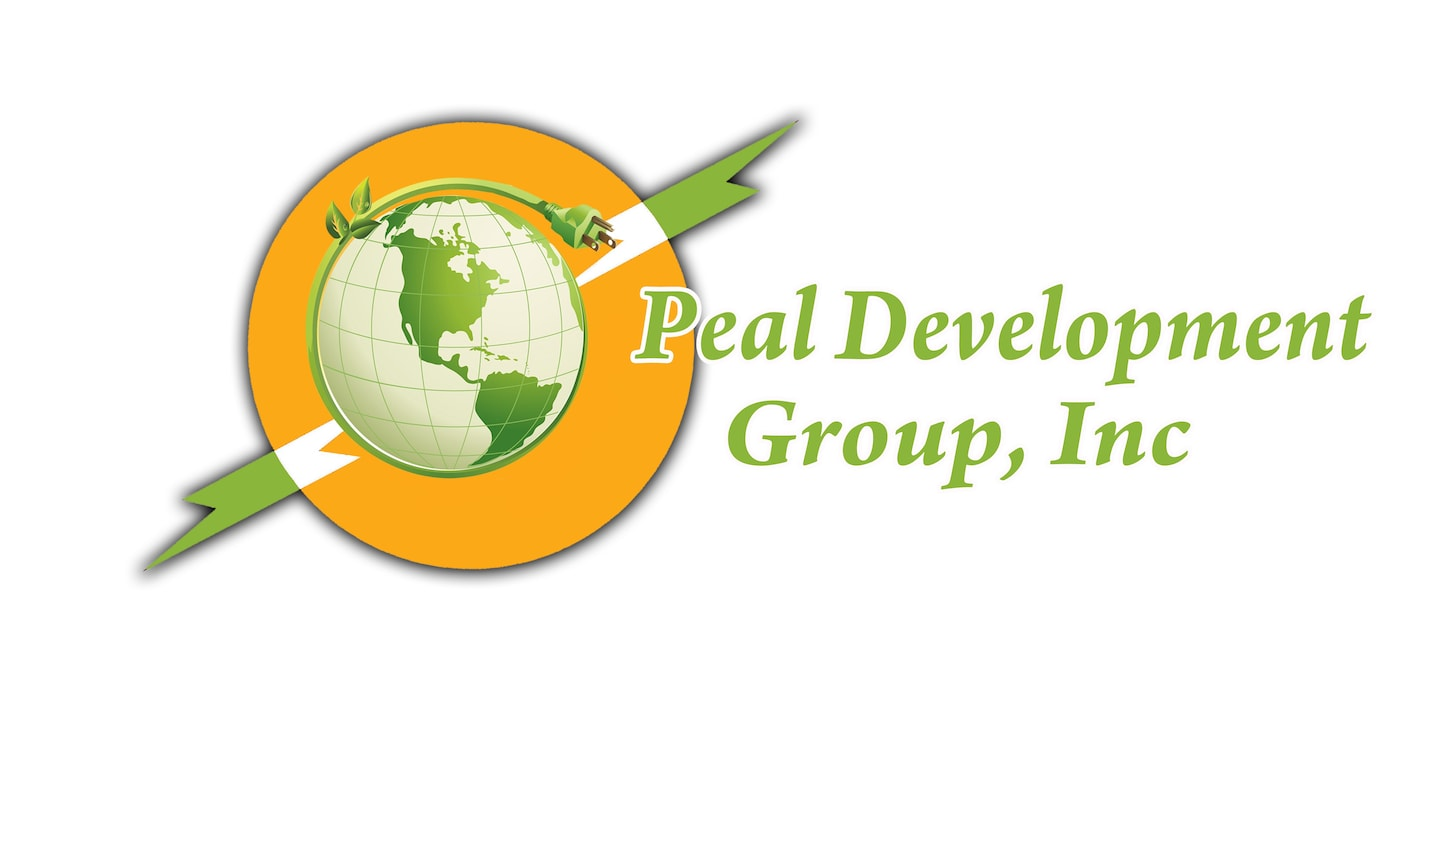 Peal Development Group Inc.